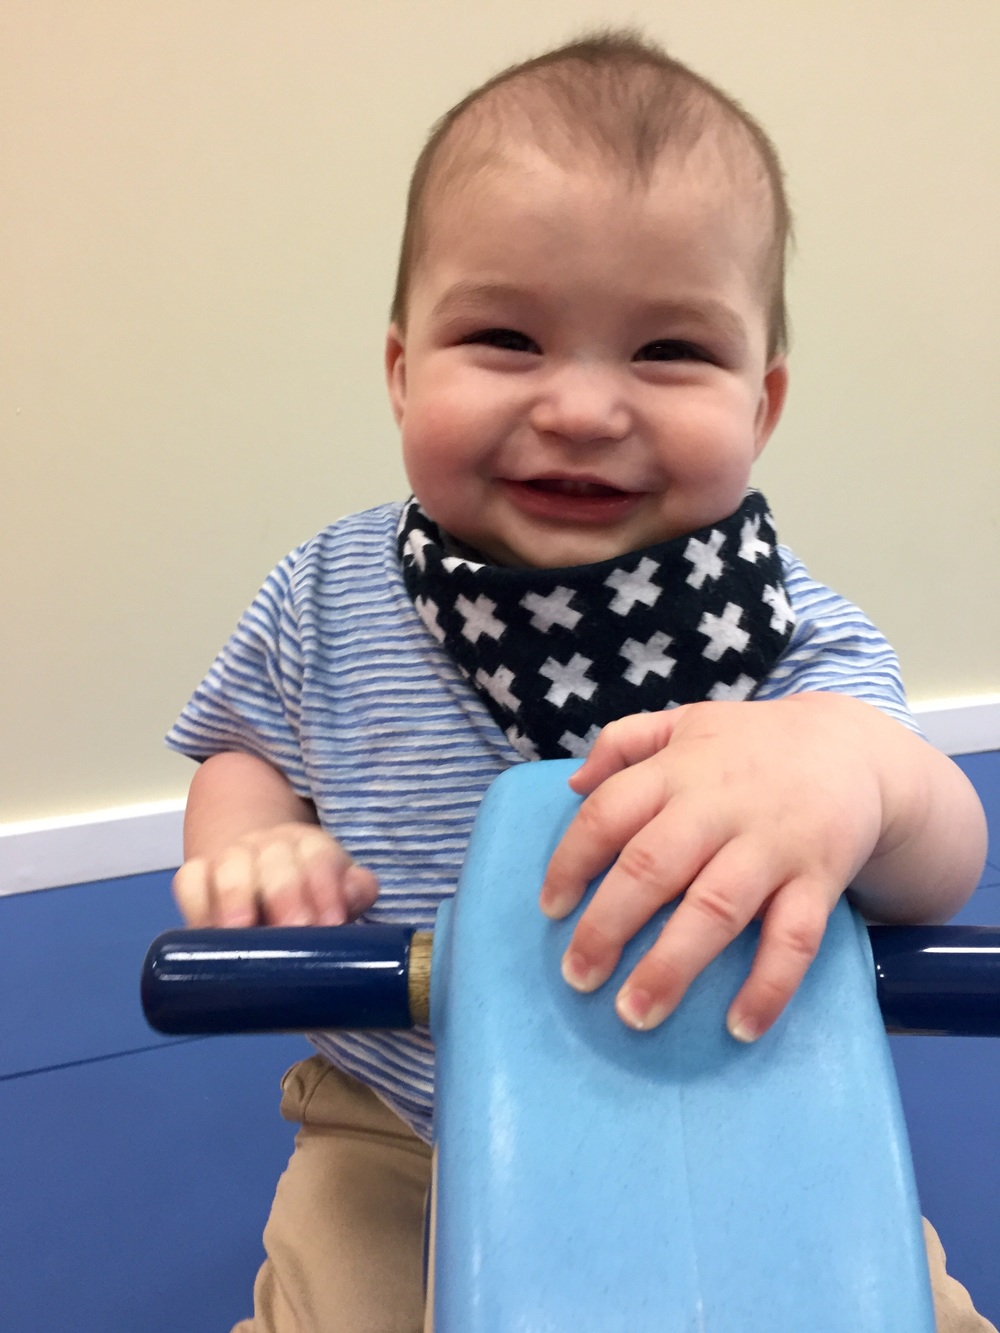 At Gymboree! Love his smile!